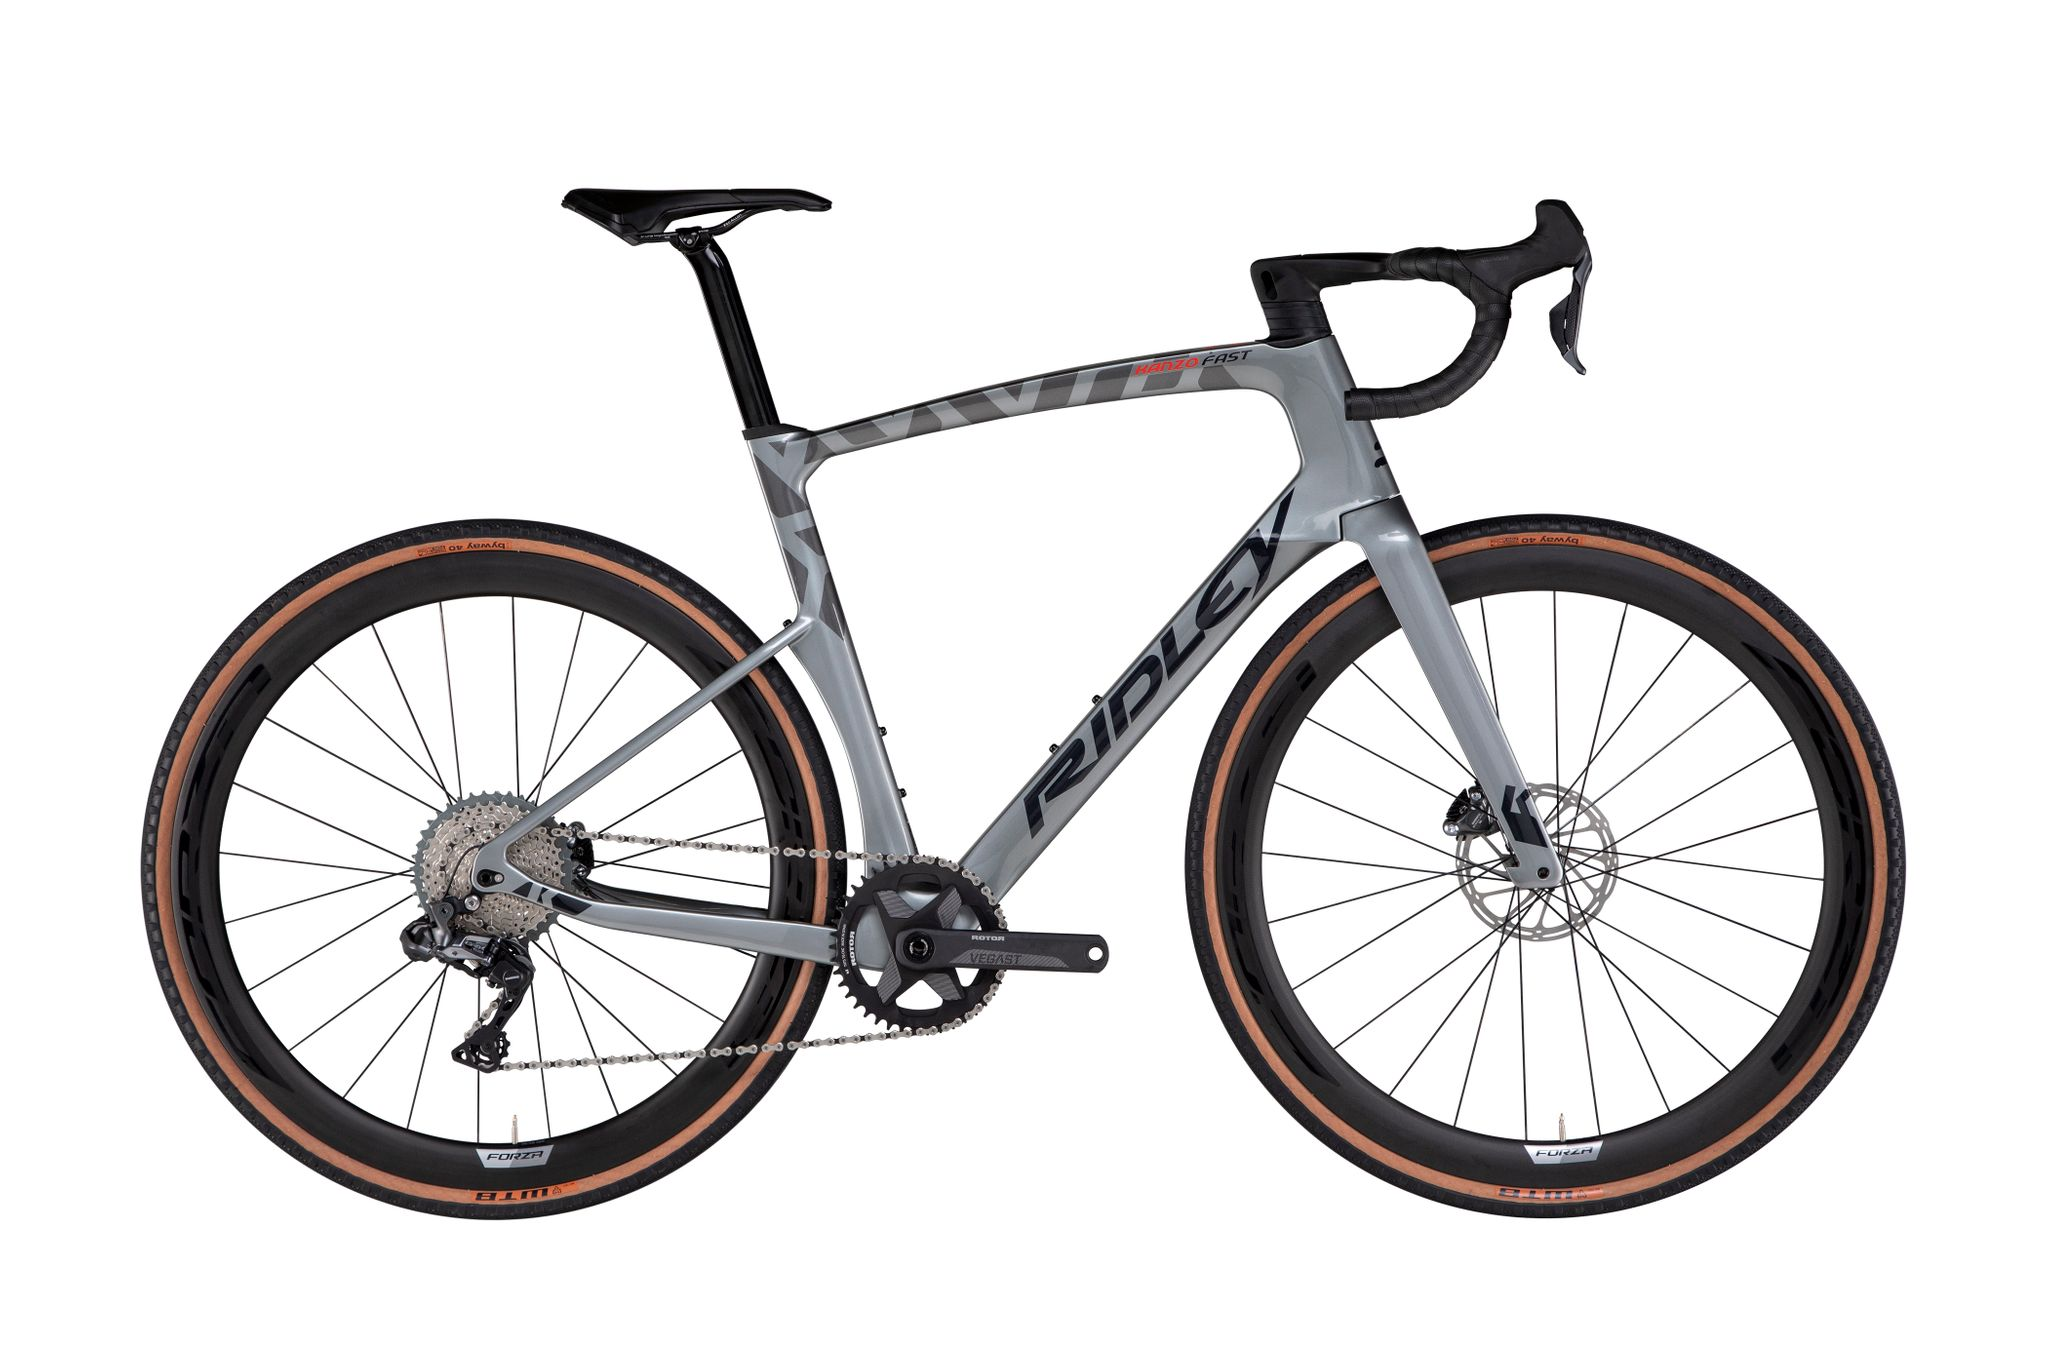 Ridley Kanzo Fast complete bike classified